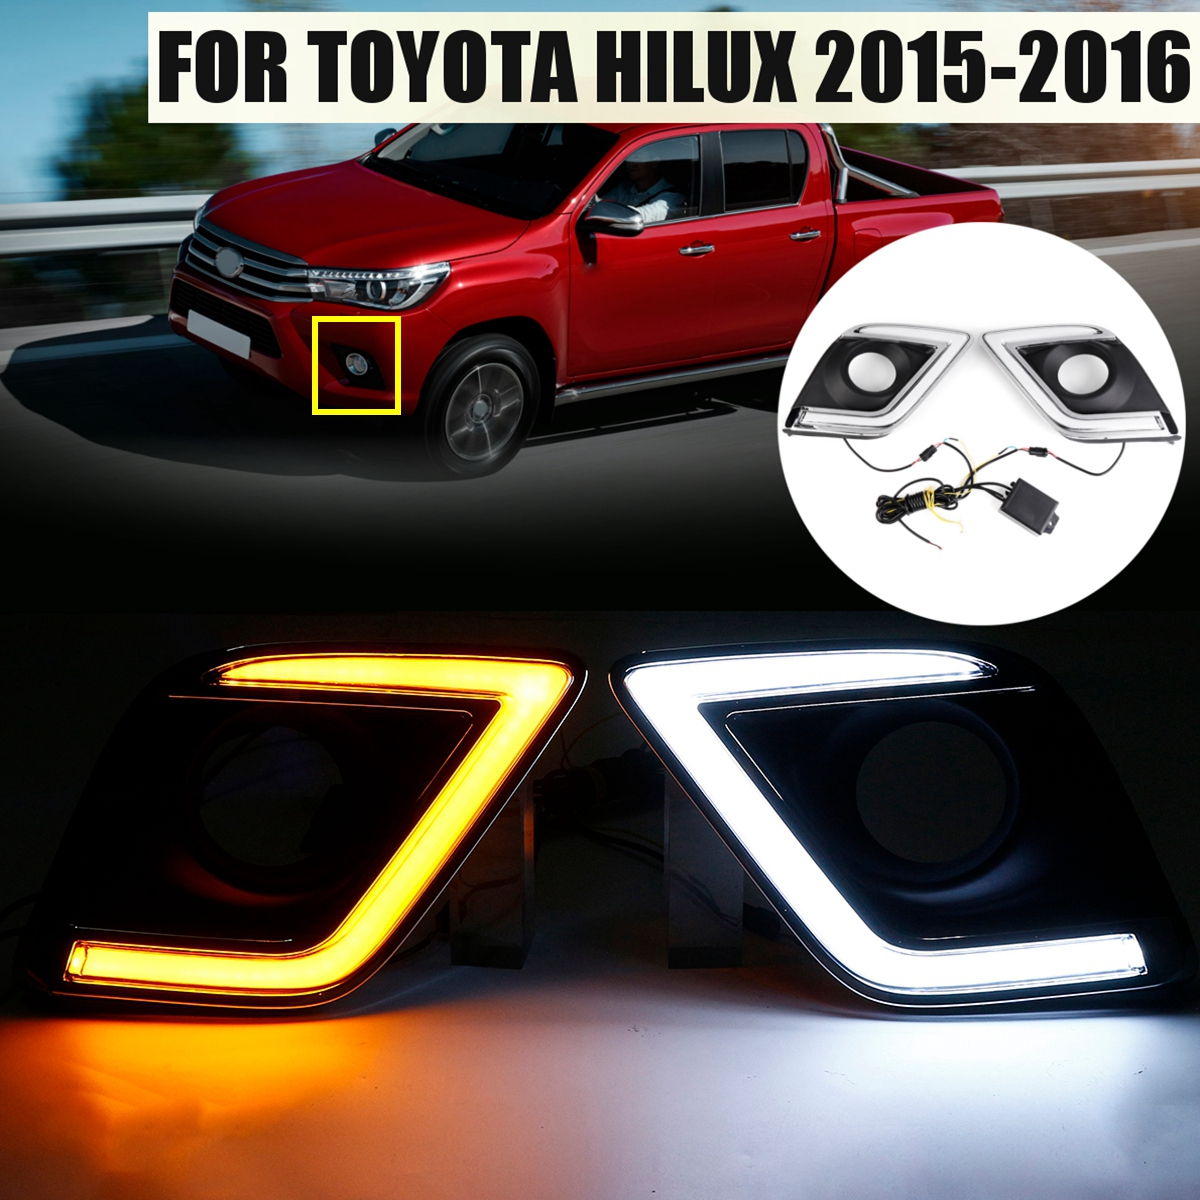 For Toyota Hilux Revo 2015-2016 1 Pair Car LED DRL Daytime Running Lights Turn Signal Lamp DRL fog lamp cover with turn signal 12v car led drl daytime running light fog lamp cover with turn signal light for hyundai elantra 2016 2017